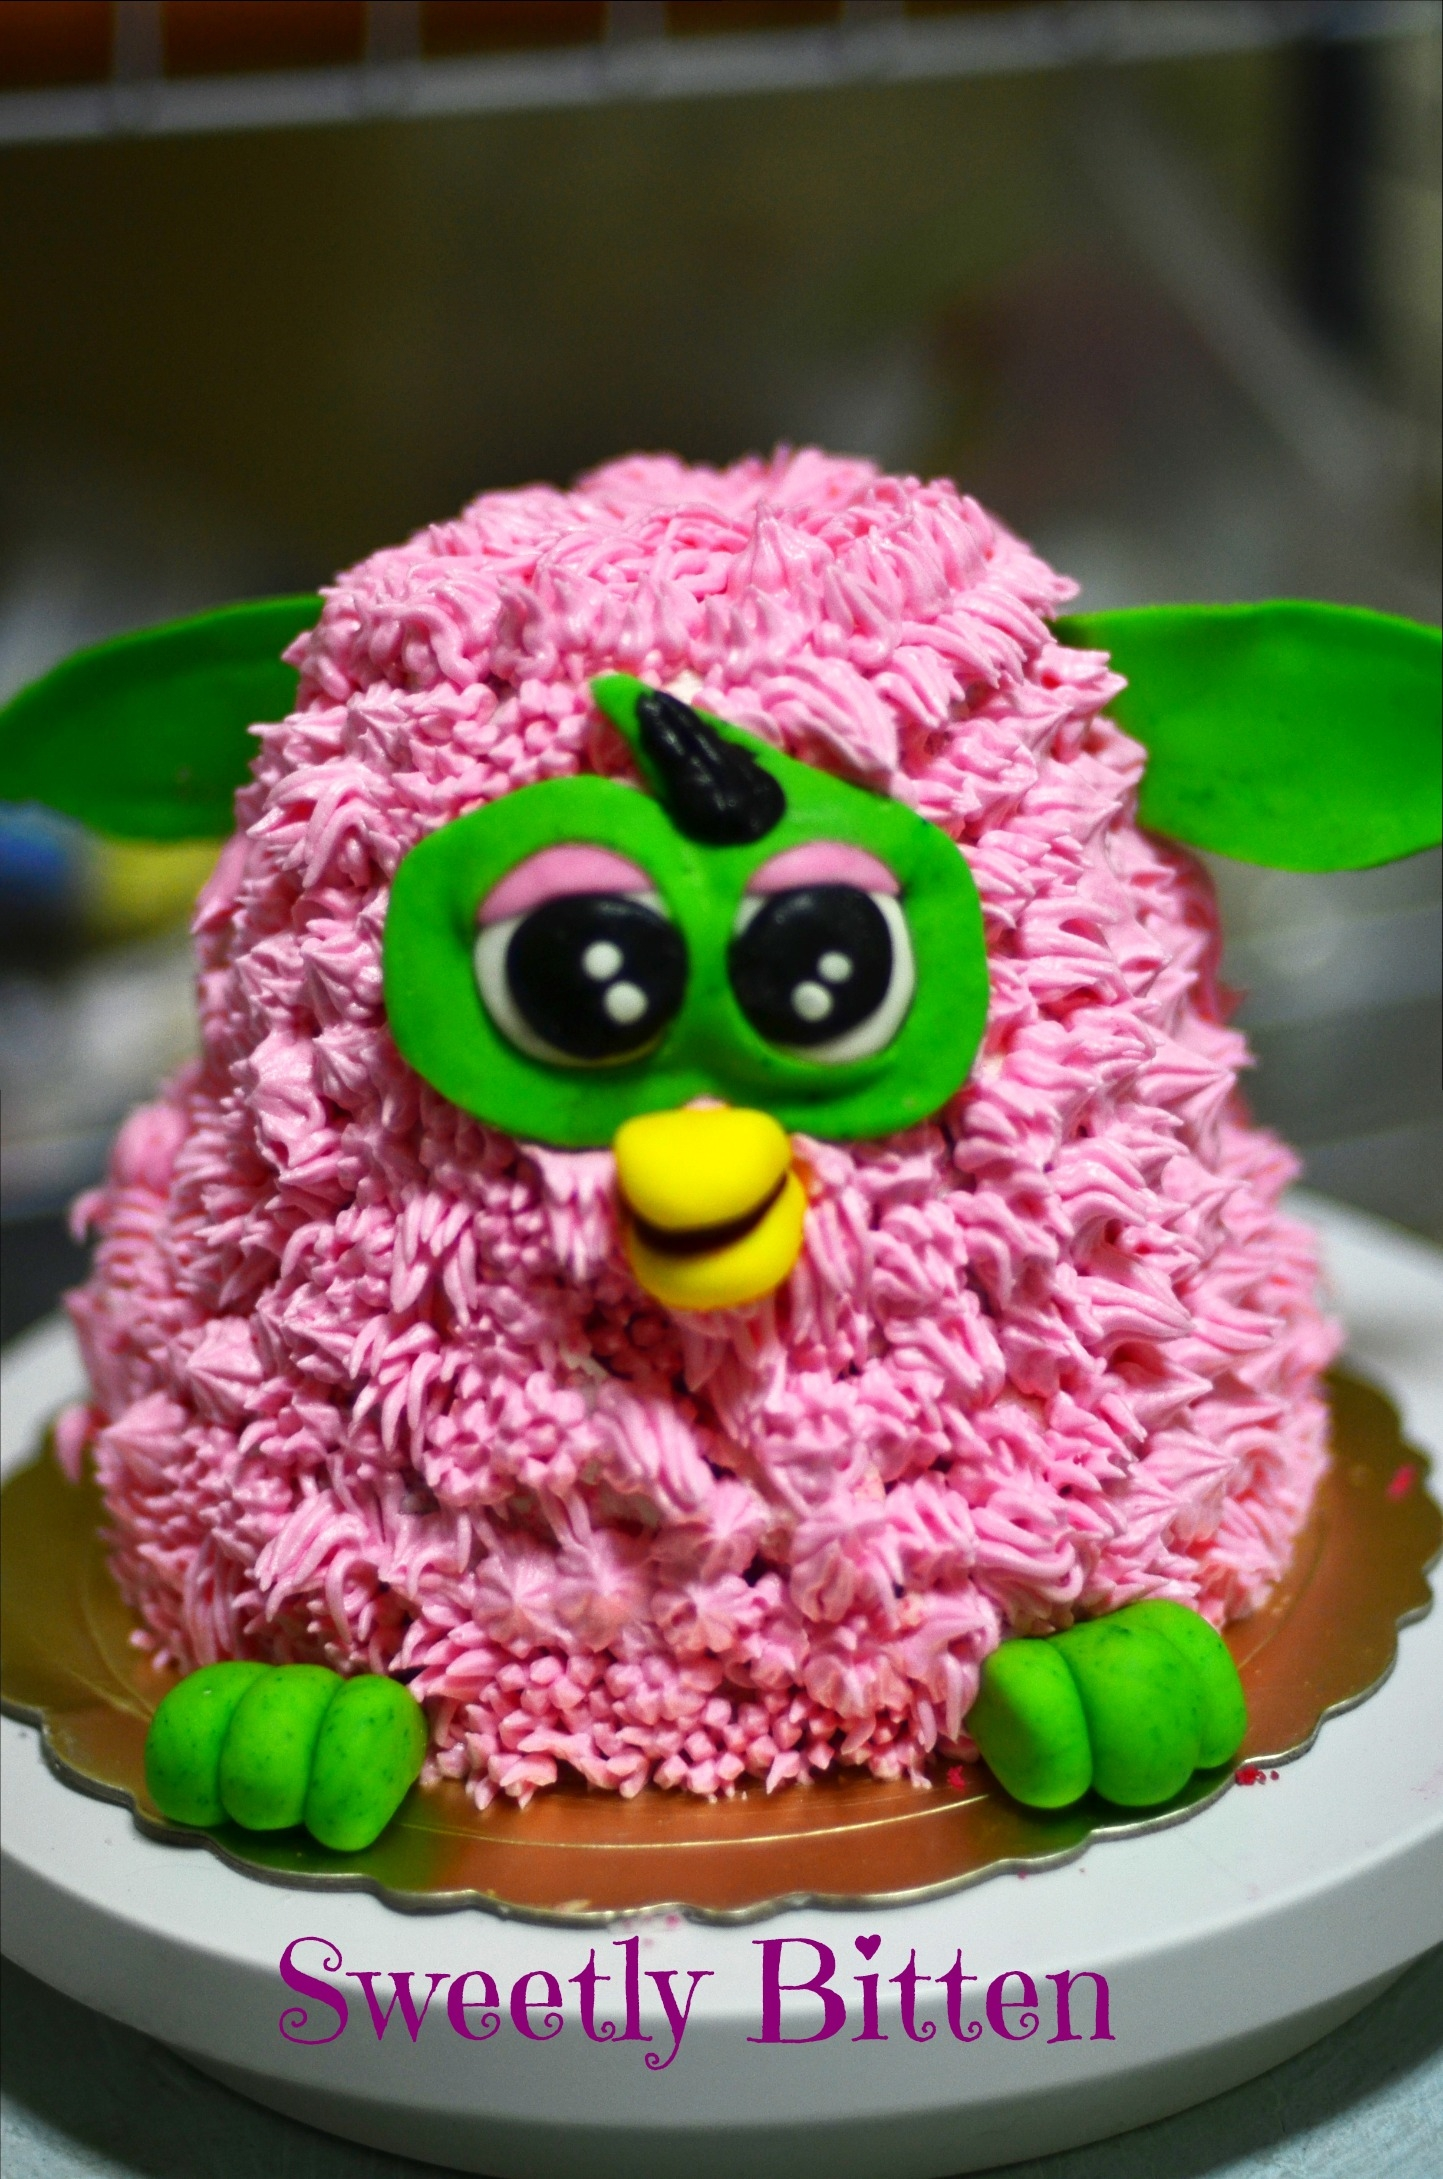 Just Because Cakes My first 3D rendition of a furby cake.